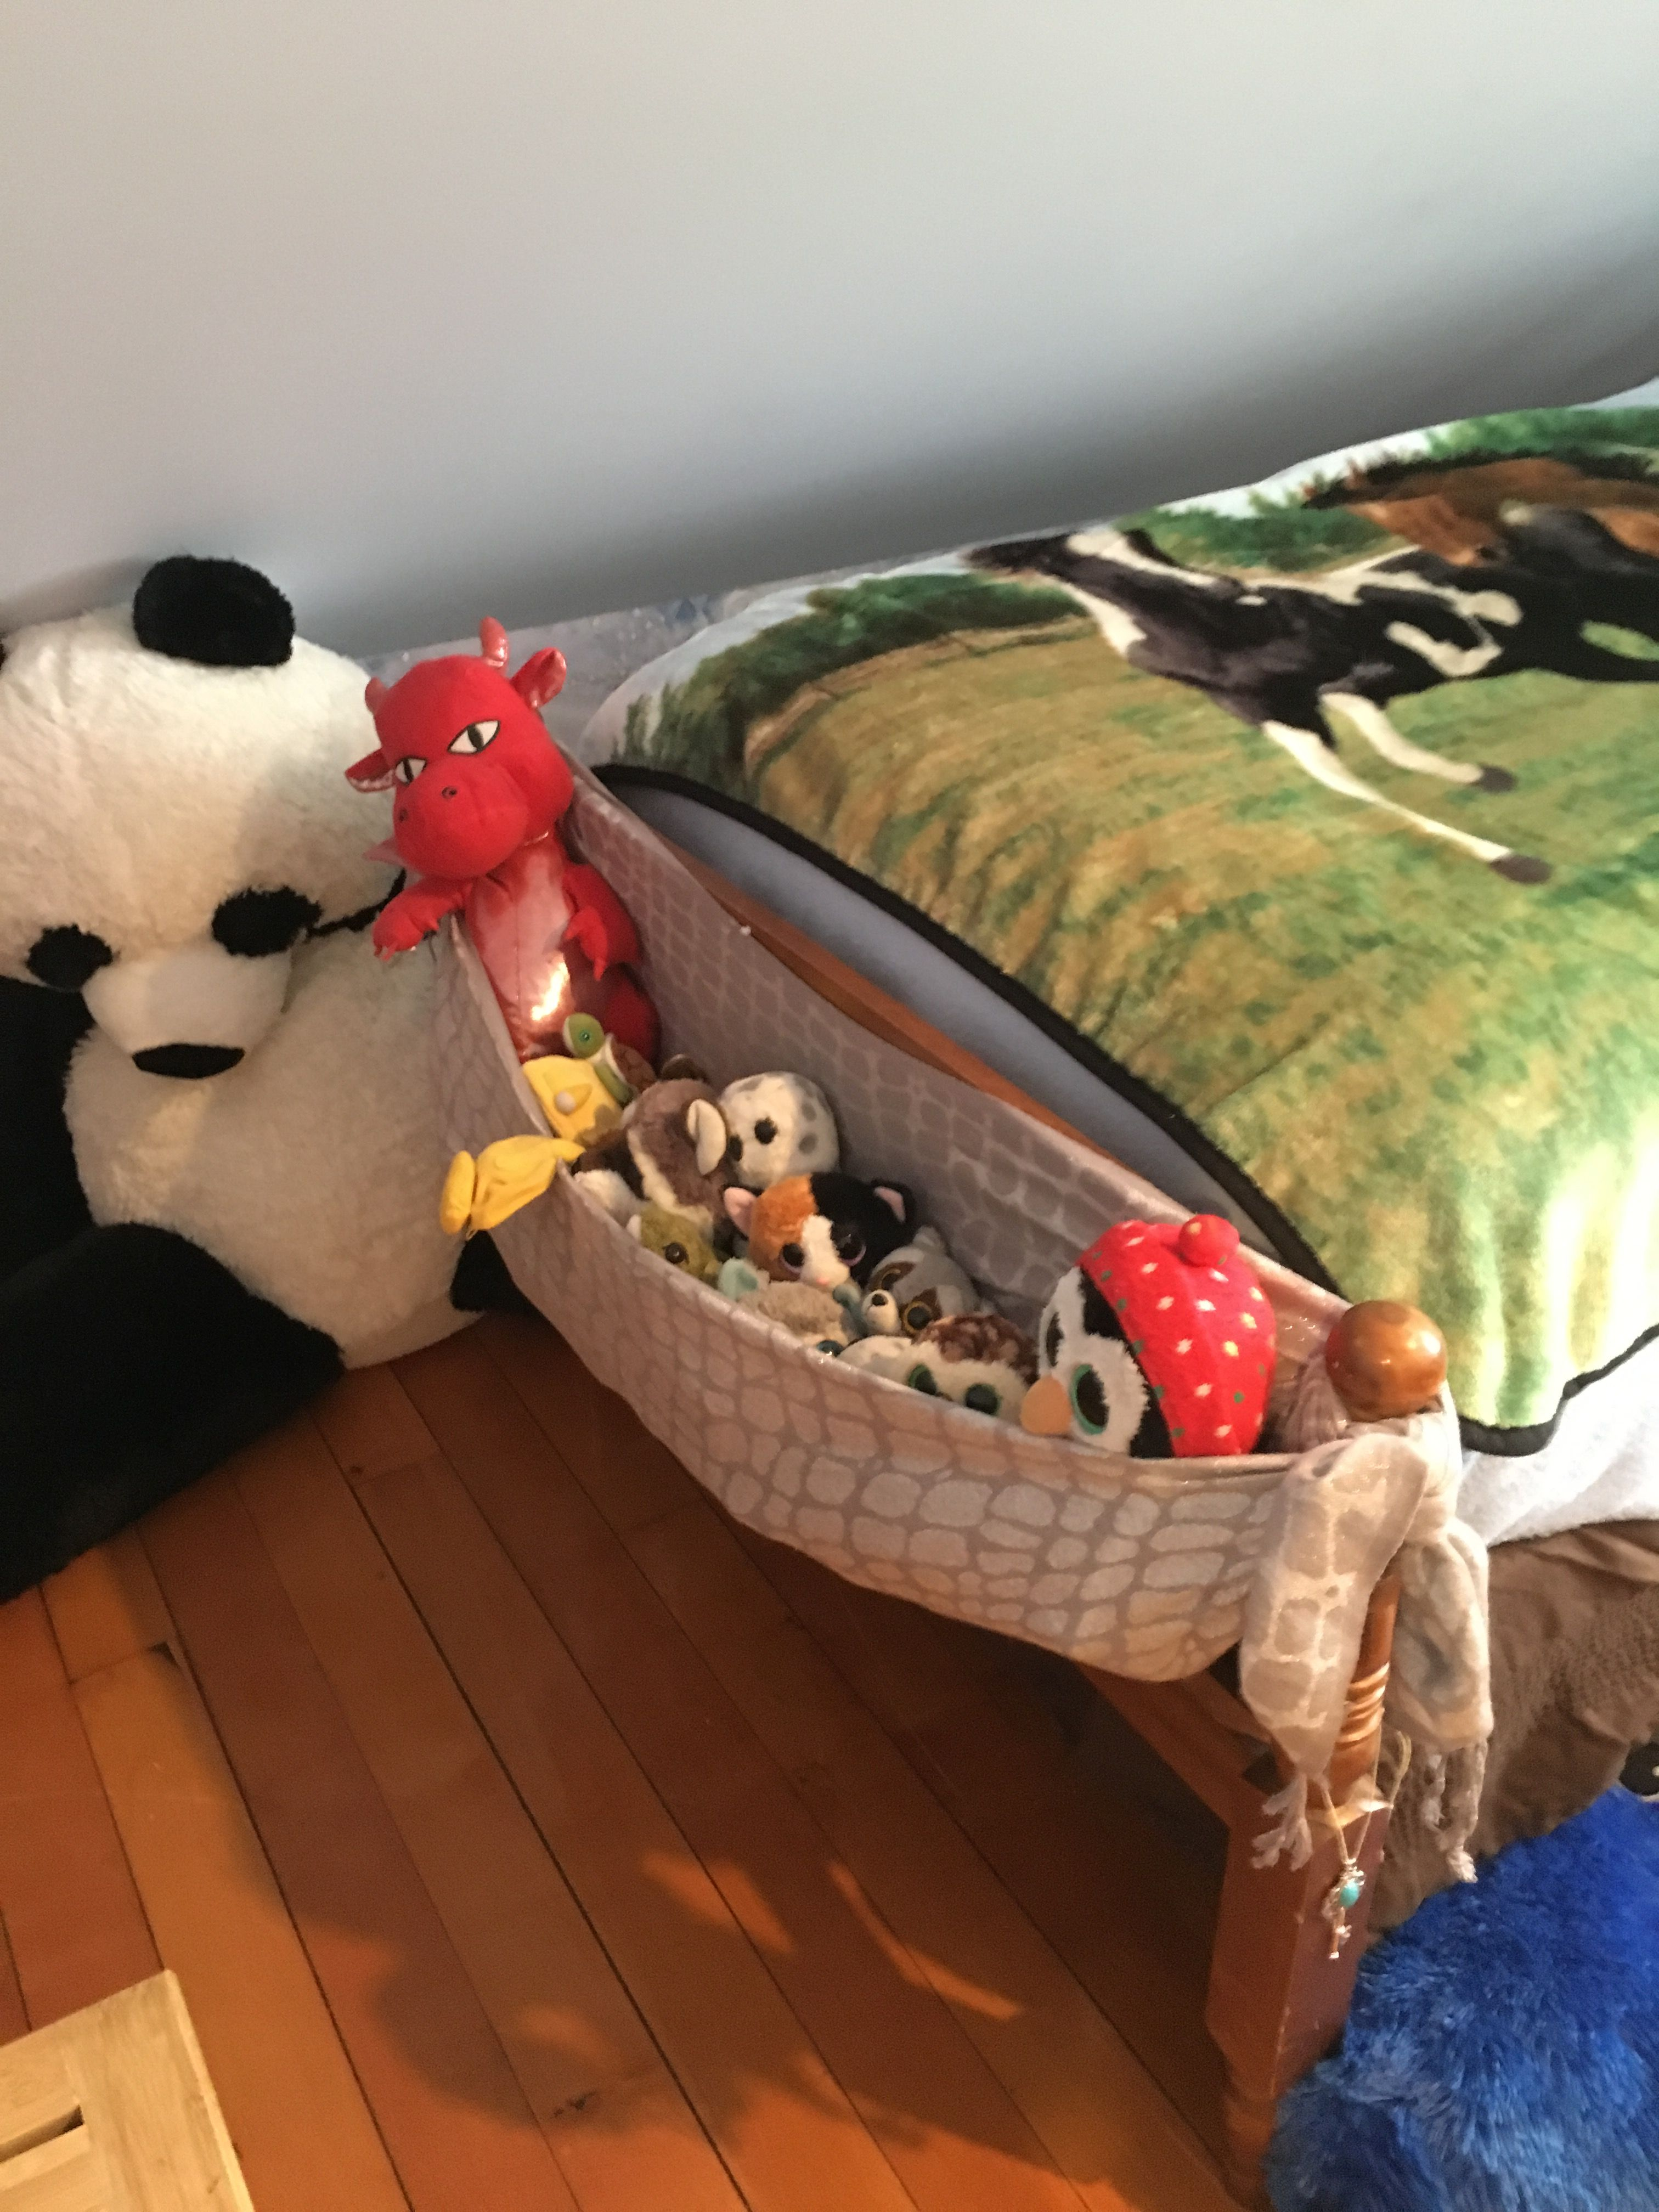 Tie a scarf around the bed posts for a stuffed animal